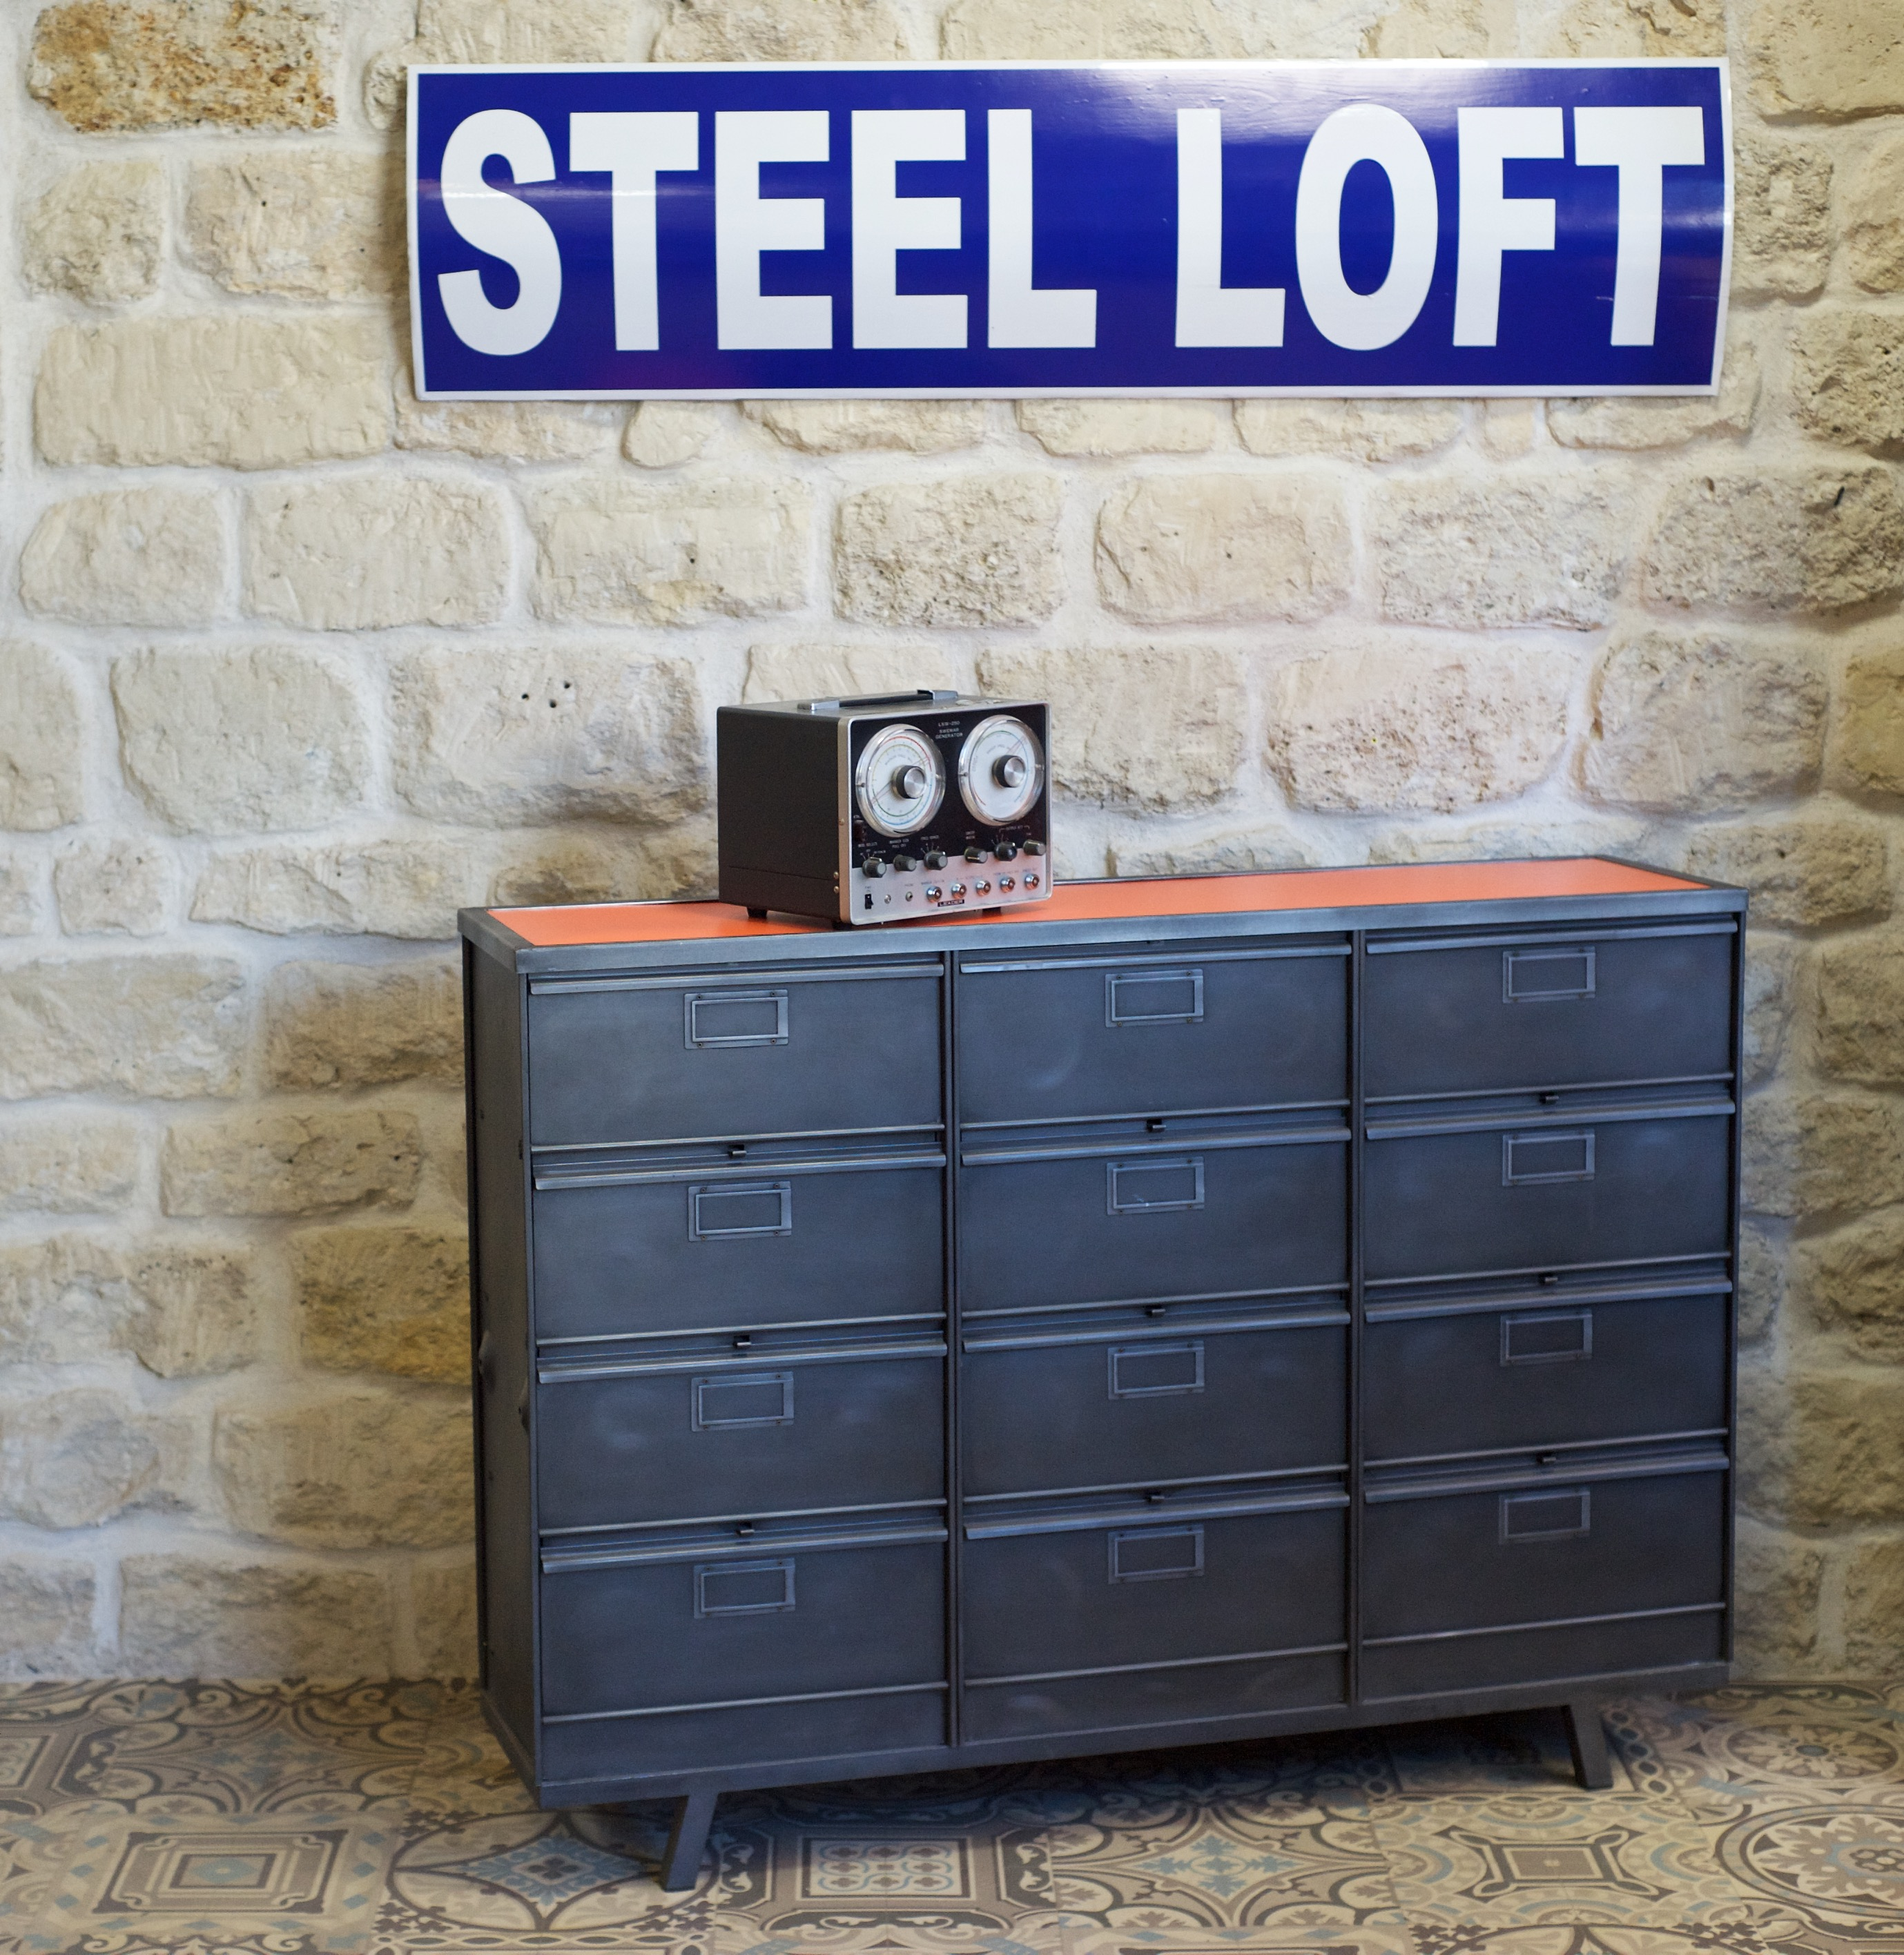 Meuble chaussure industriel casiers roneo steel loft paris steel loft paris - Meuble industriel paris ...